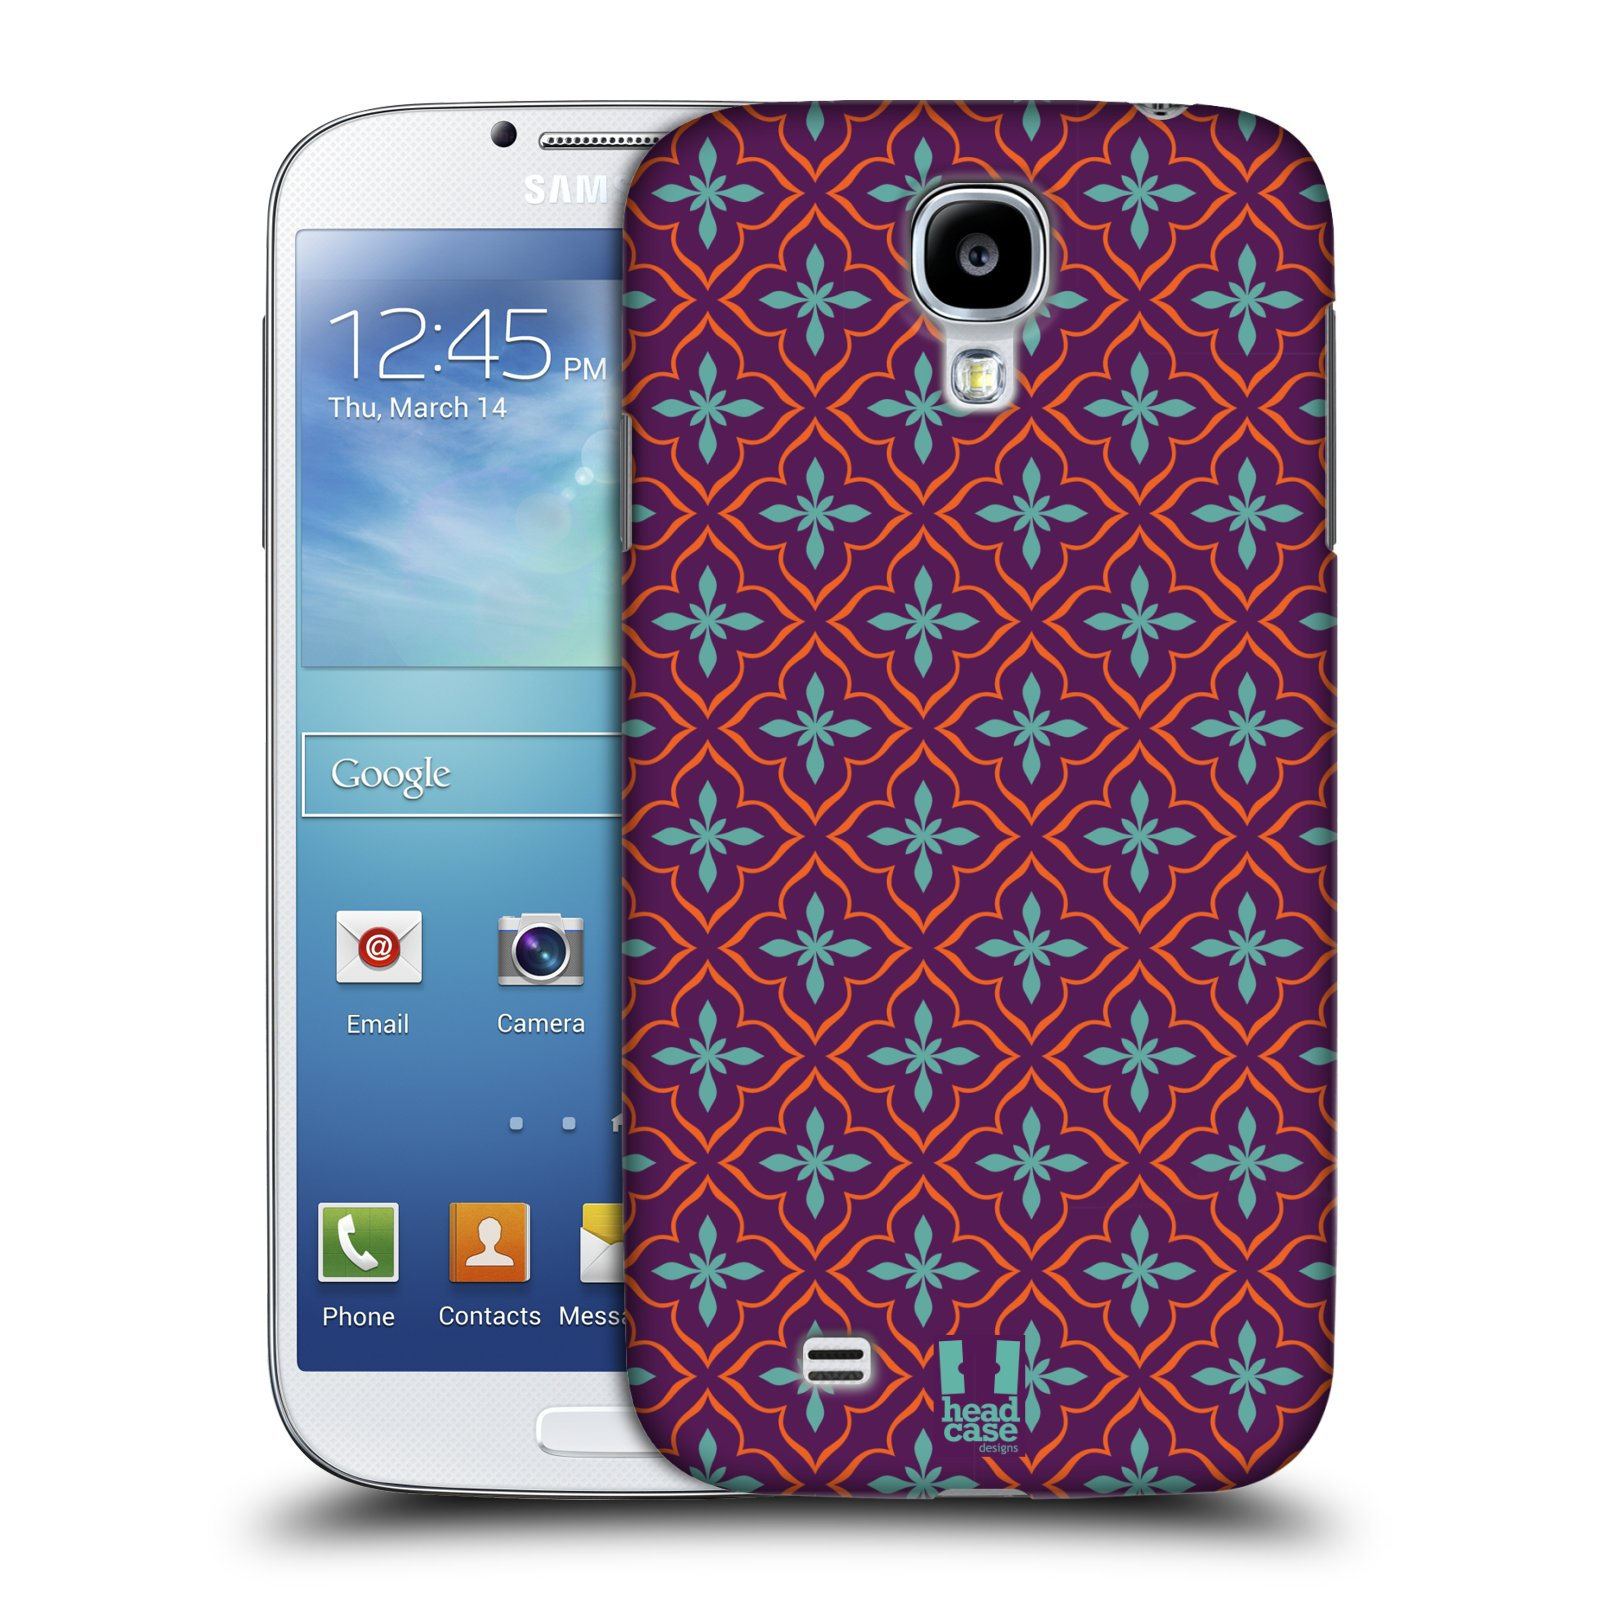 HEAD CASE DESIGNS MOROCCAN PATTERNS CASE COVER FOR SAMSUNG GALAXY S4 I9500